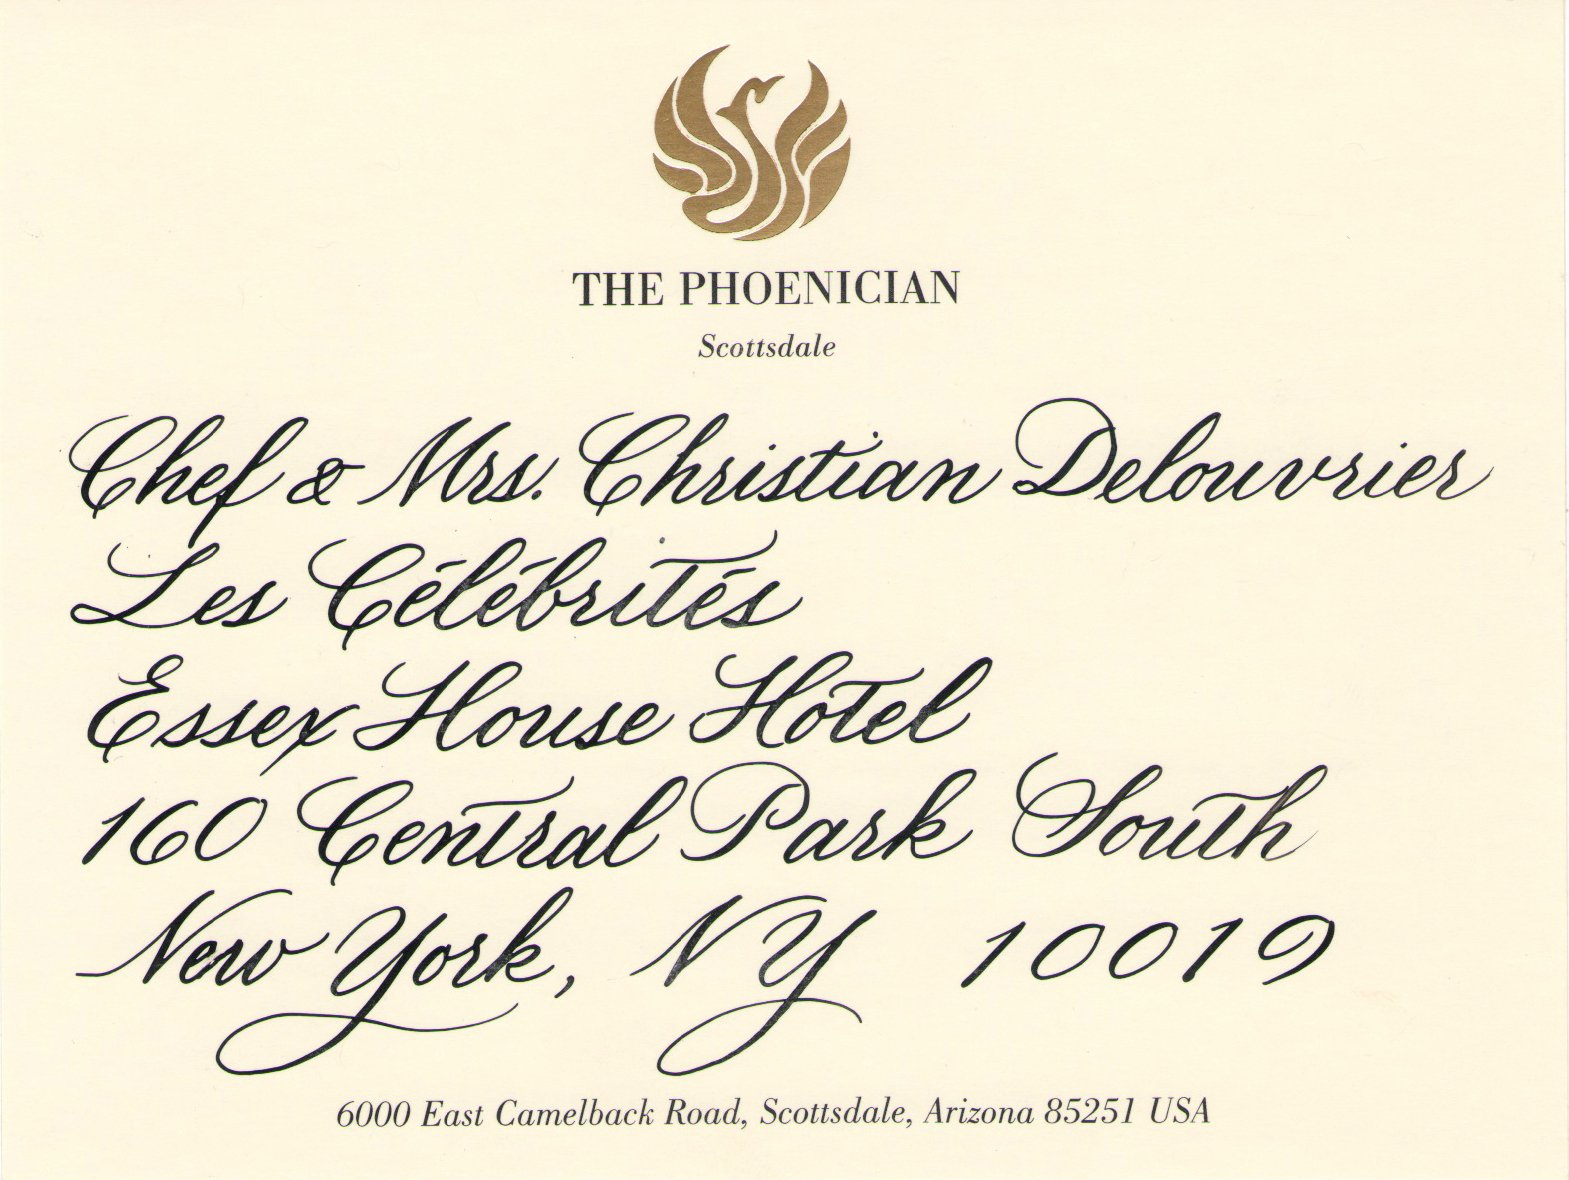 Art-Of-Excellence-The-Phoenician-Mobil-5-star-mailing-label-calligraphy